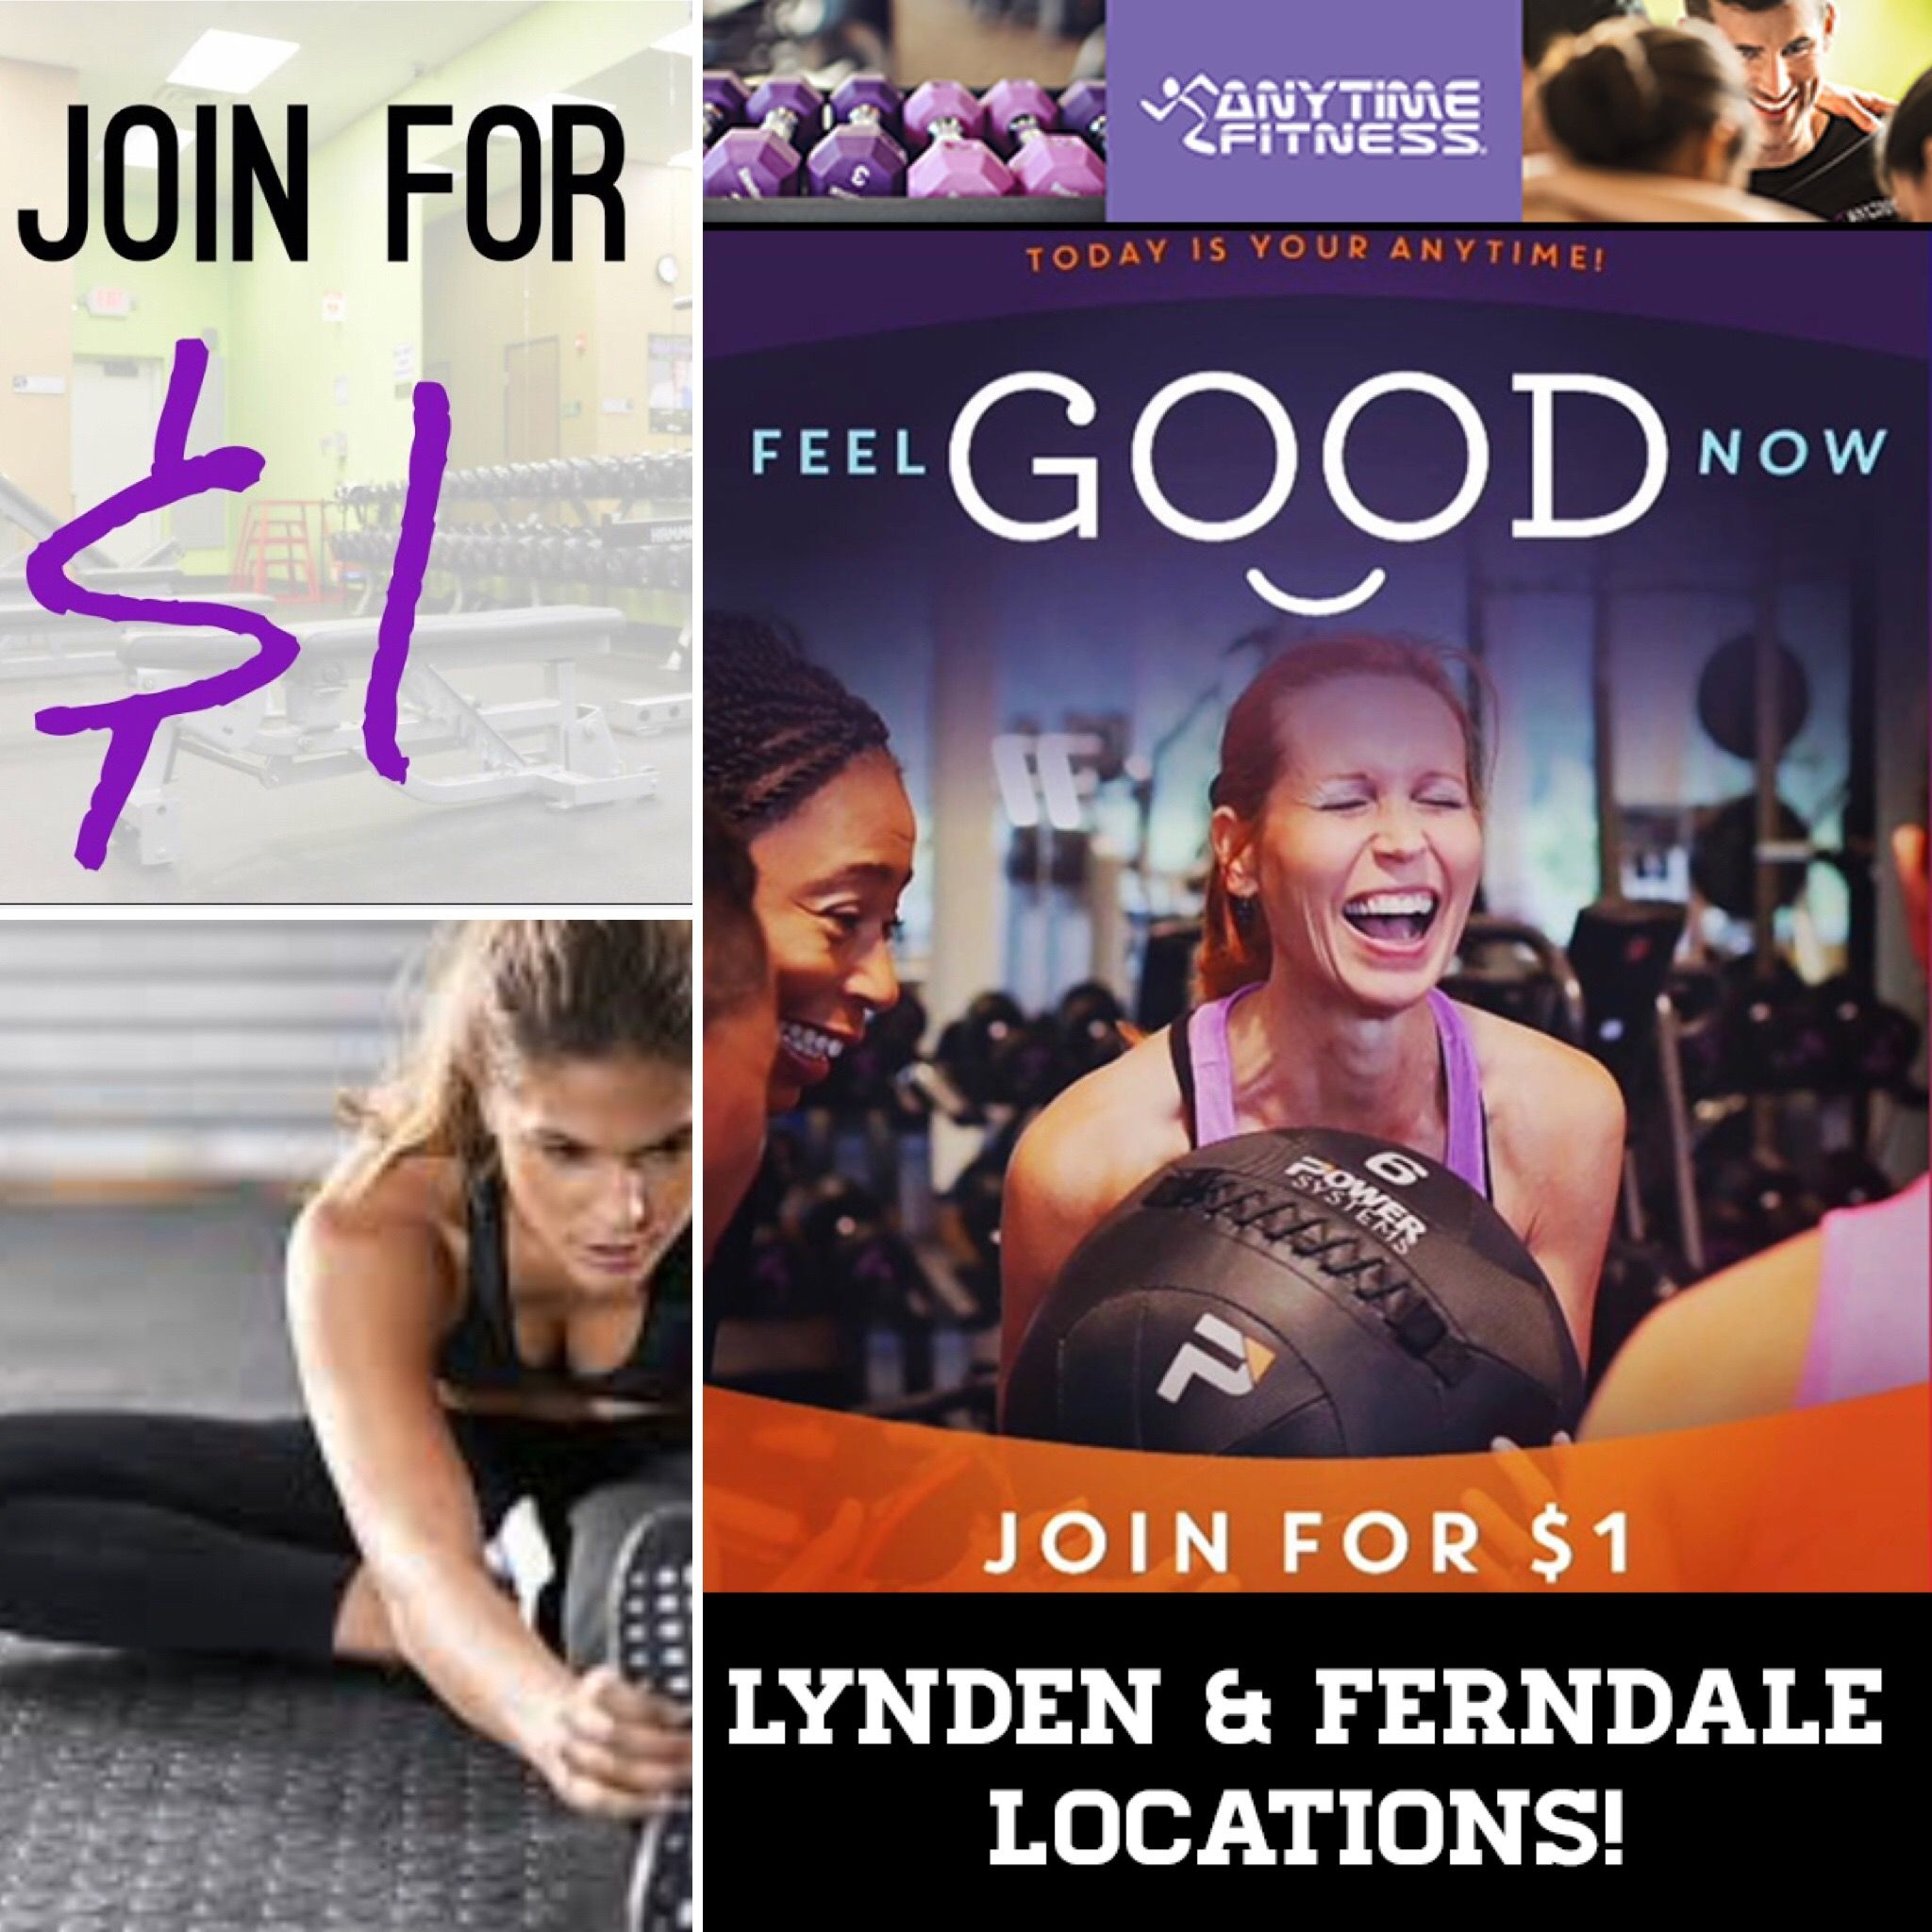 Lynden And Ferndale Between September 24 29 Take Advantage Of This Amazing Deal If You Re Looking To Join A Gym An Anytime Fitness Gym Life Join A Gym